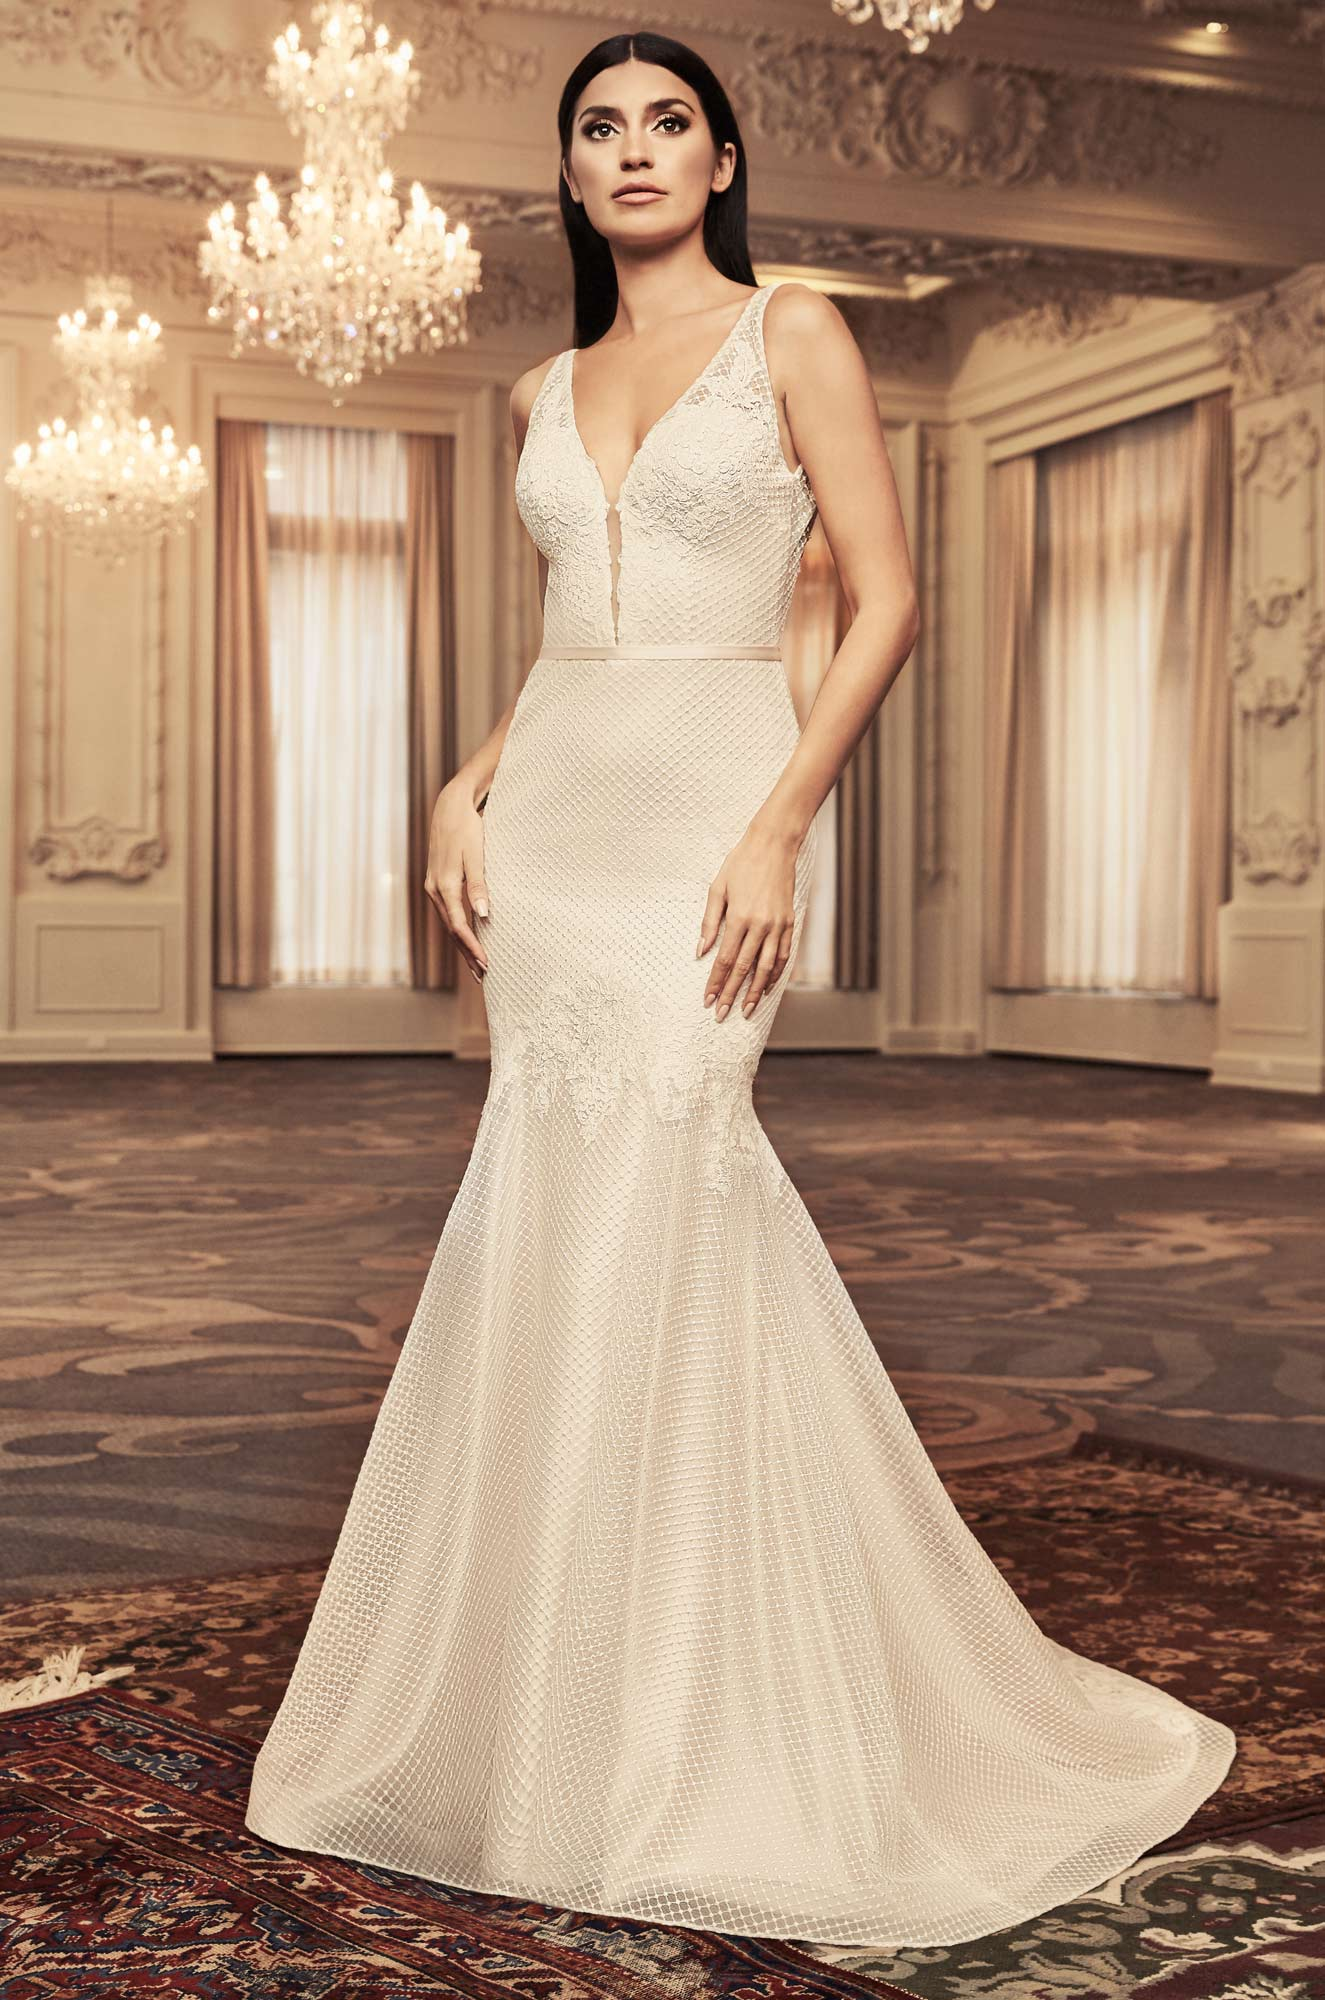 Mira Couture Paloma Blanca 4806 Wedding Dress Bridal Gown Chicago Boutique Front